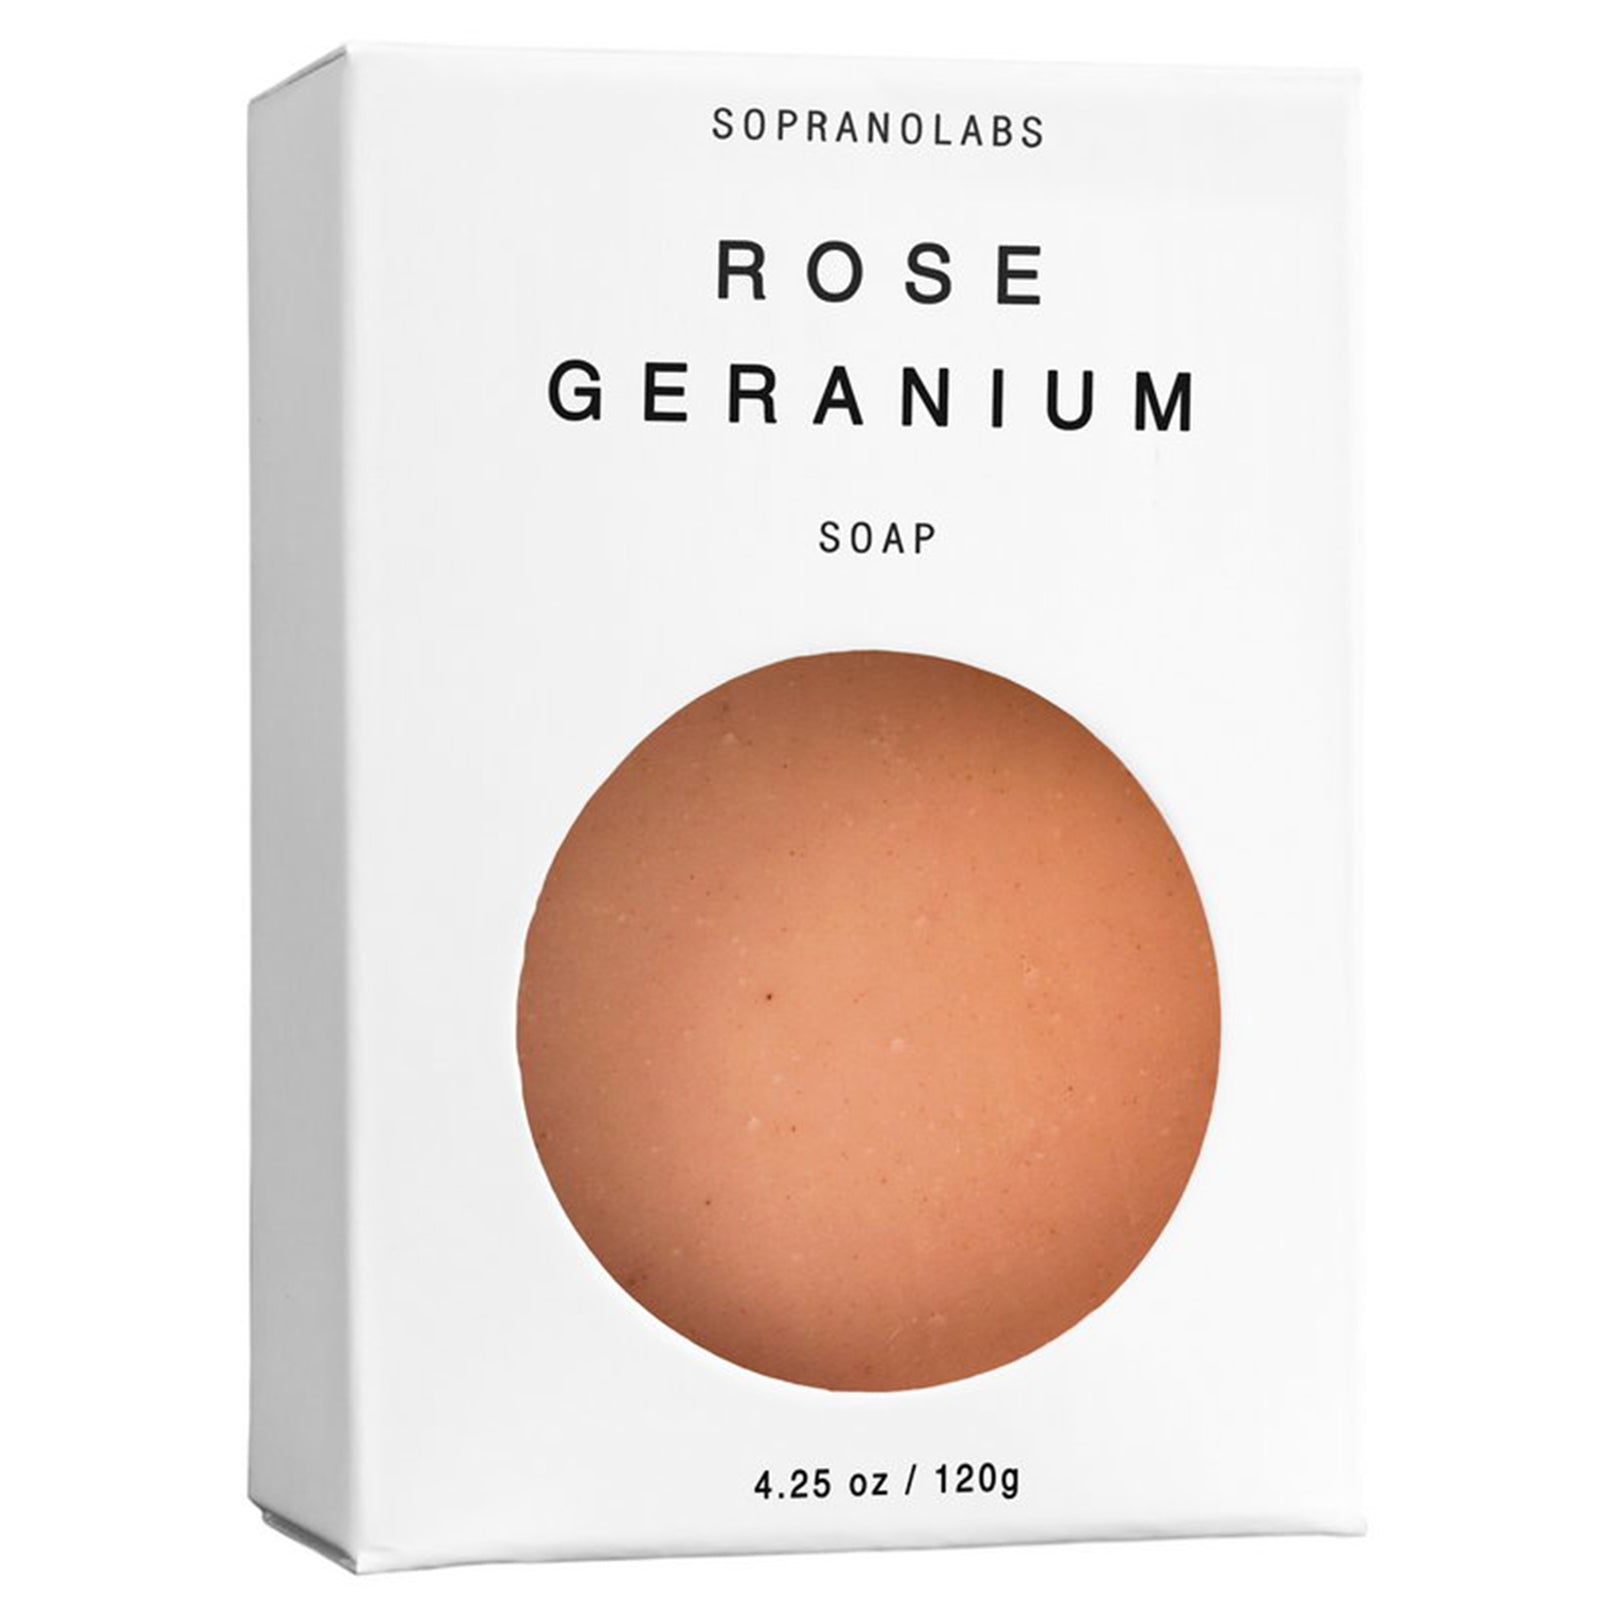 Soprano labs rose geranium soap